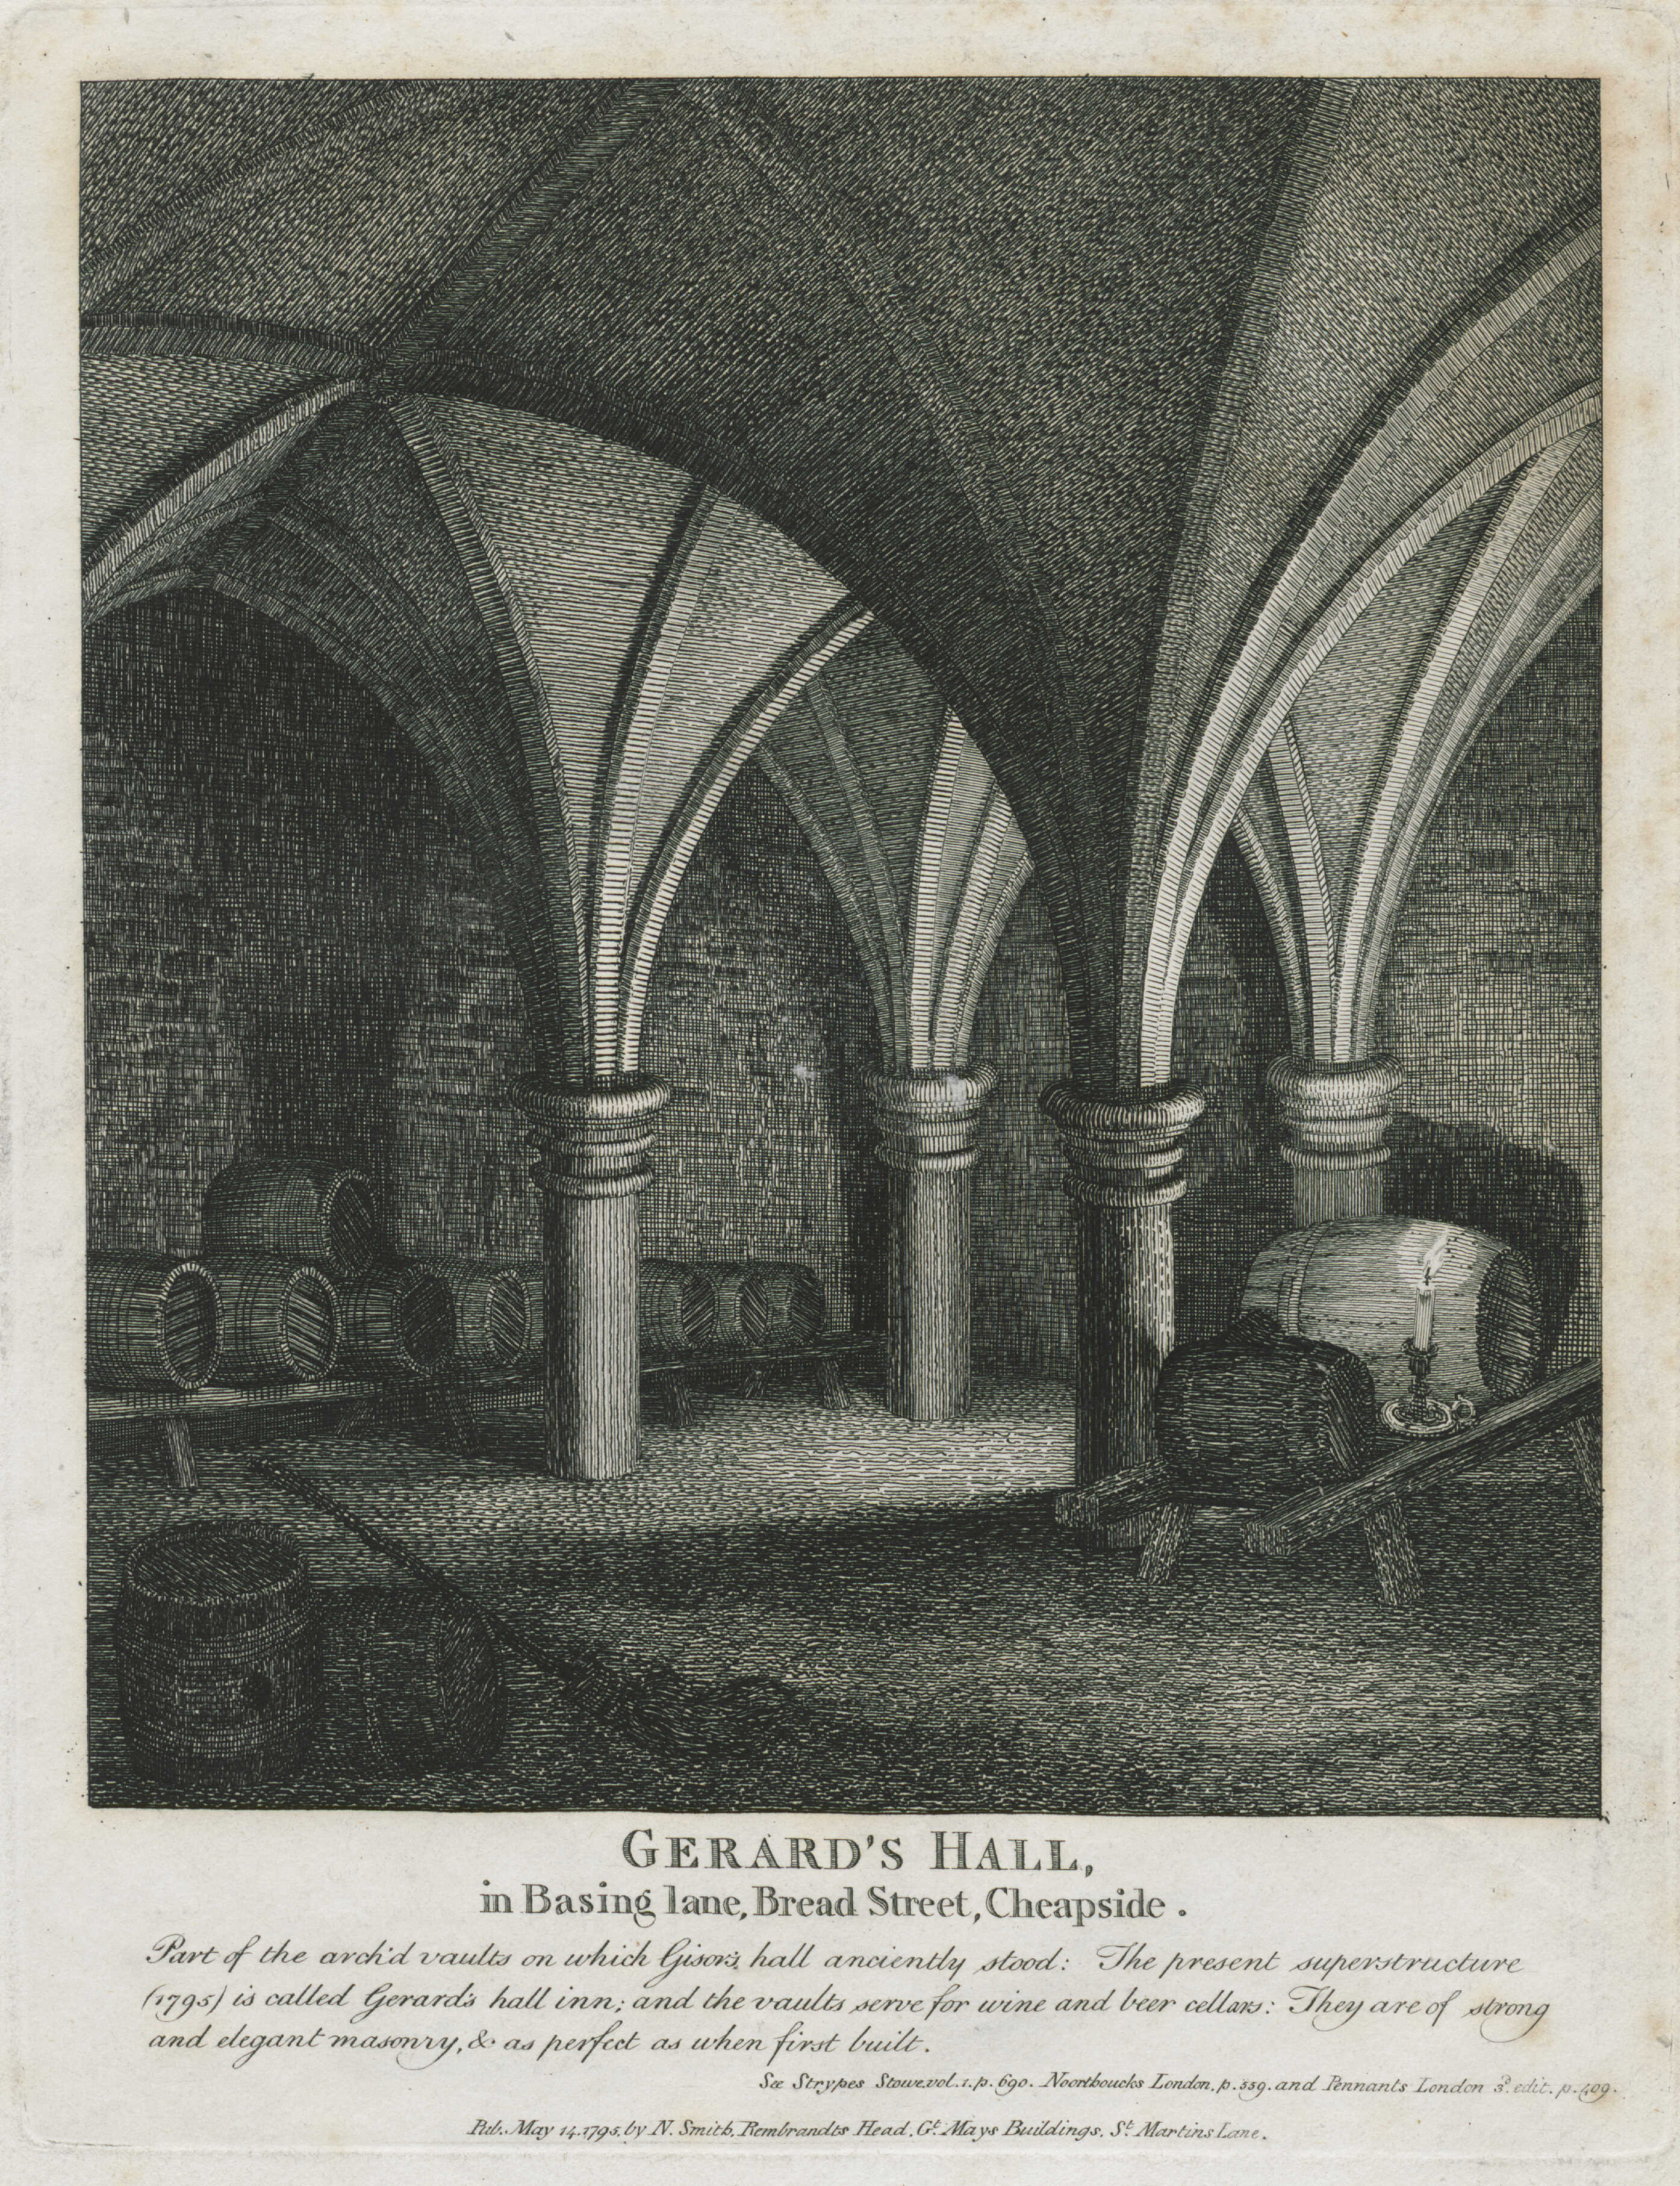 58-gerards-hall-in-basing-lane-bread-street-cheapside